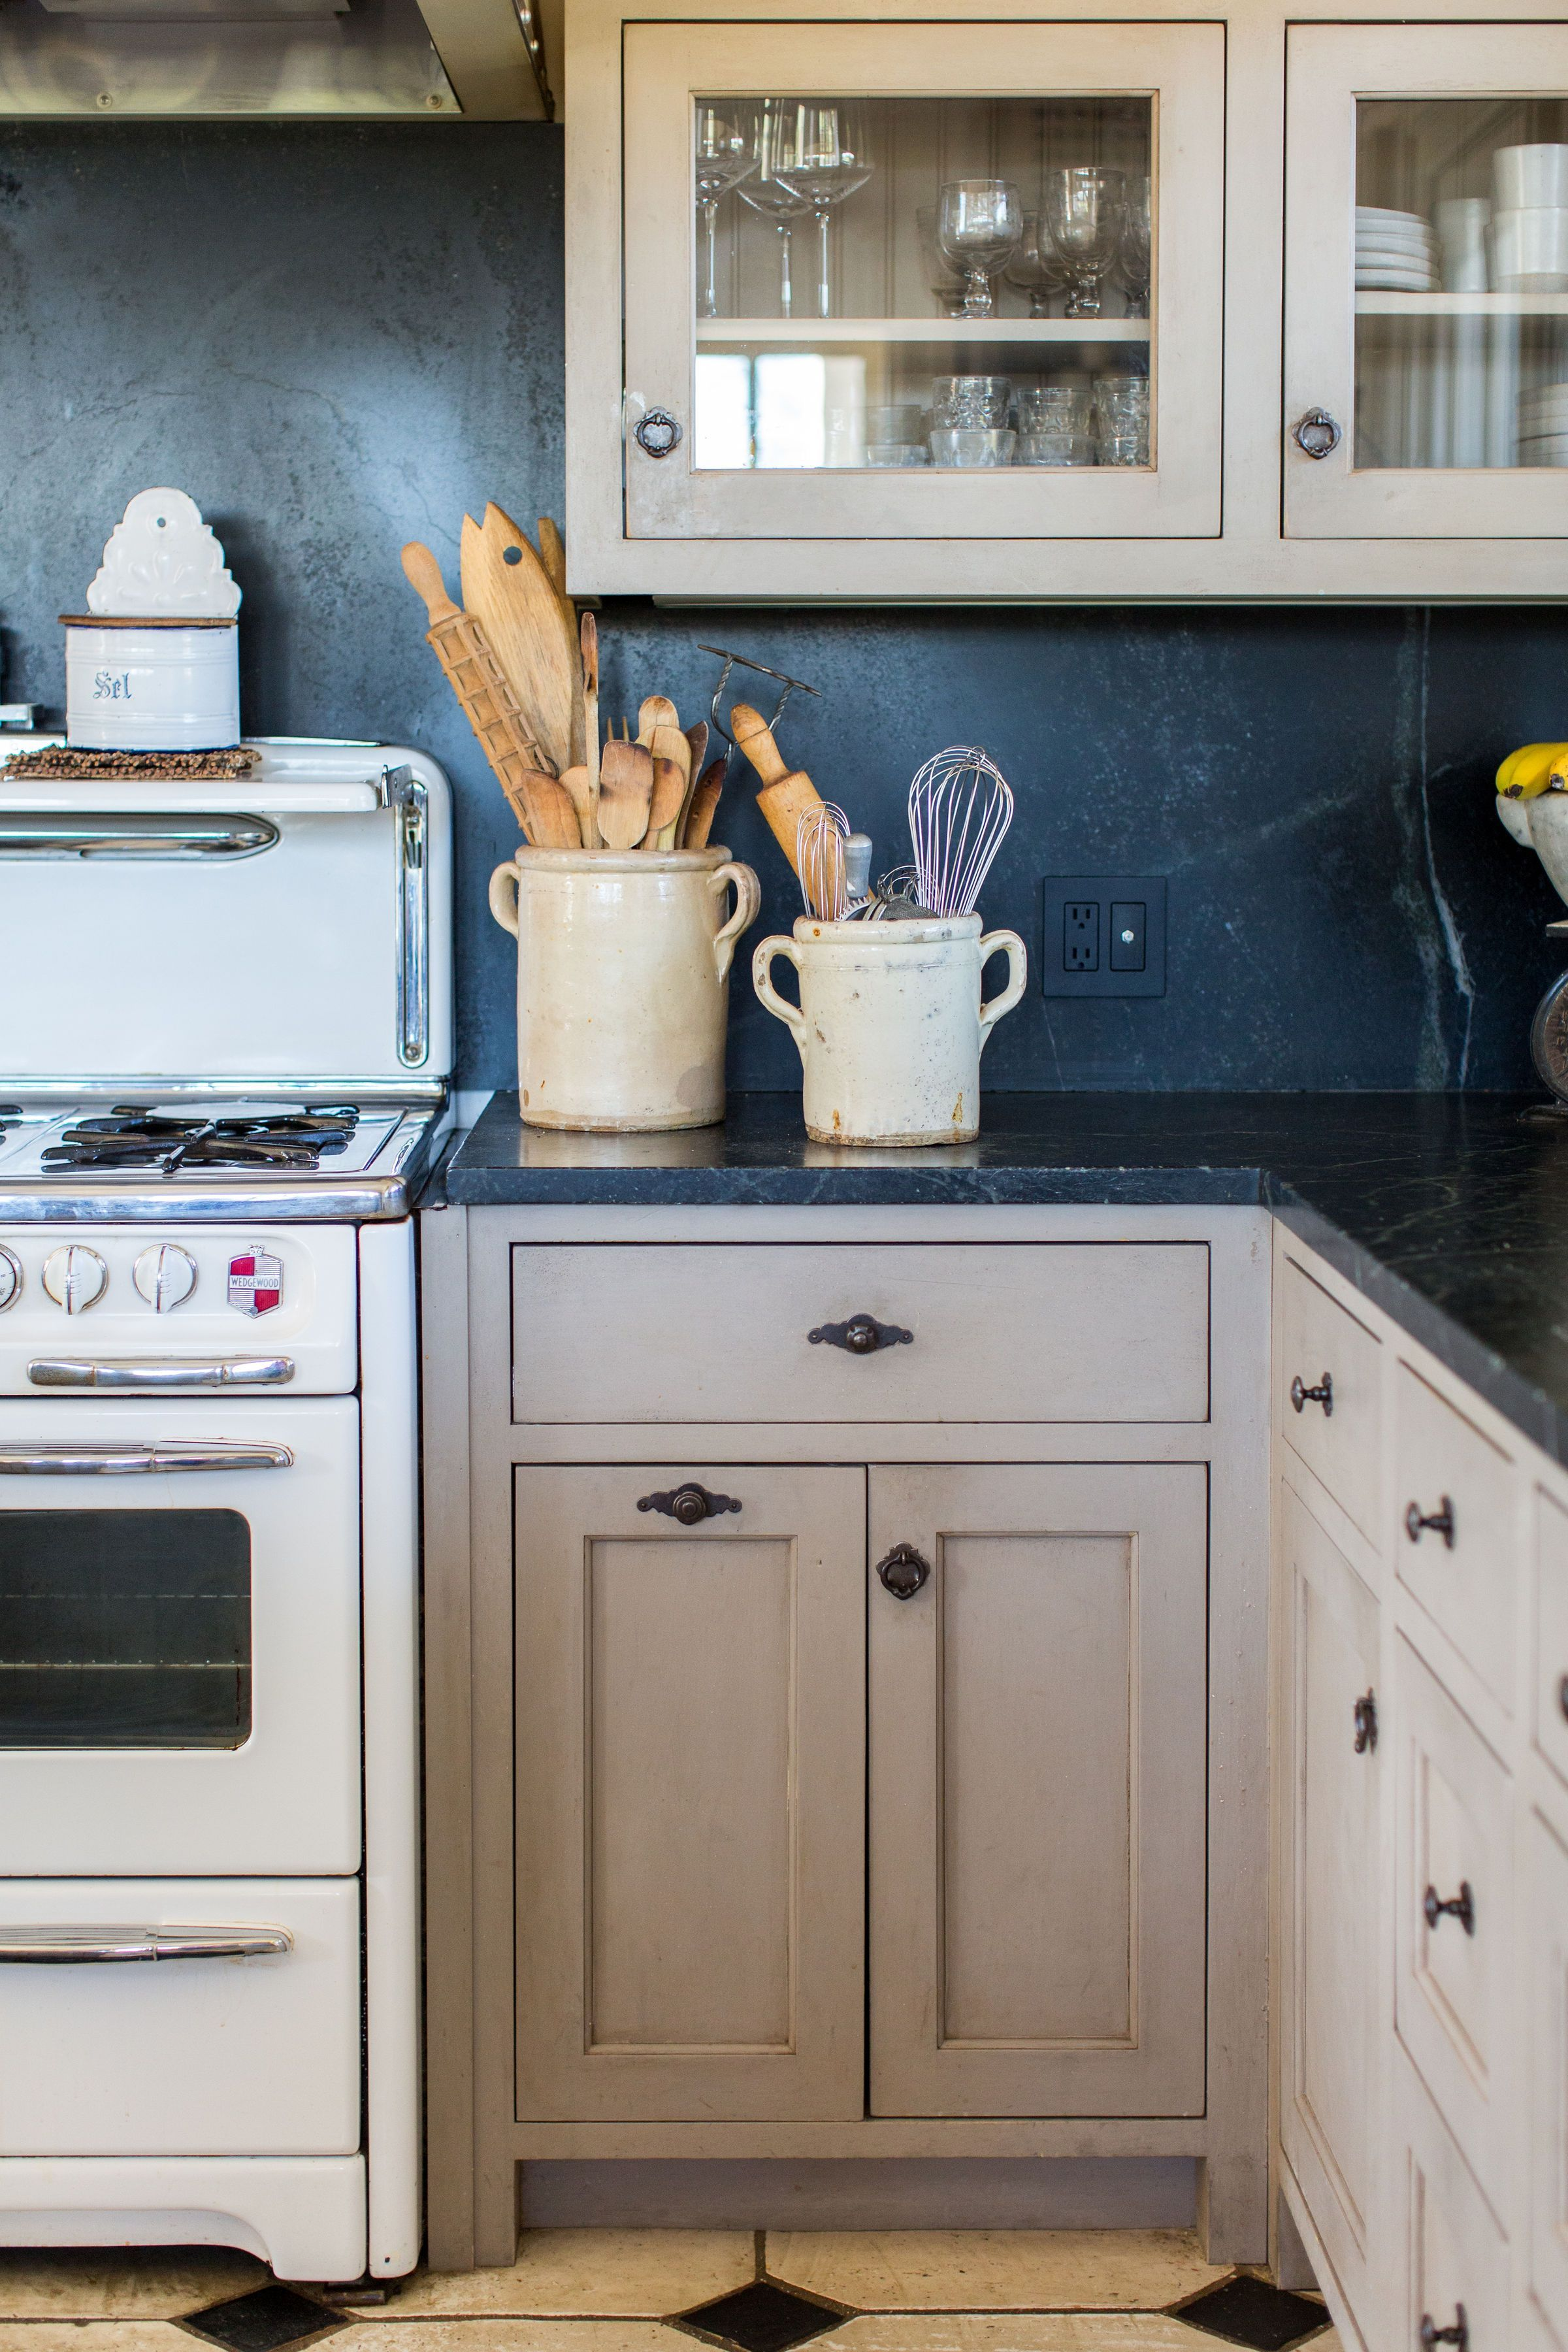 French Kitchen Design Wedgewood Stove And French Accessories Diy Kitchen Remodel Classic Kitchen Design Painting Kitchen Cabinets White